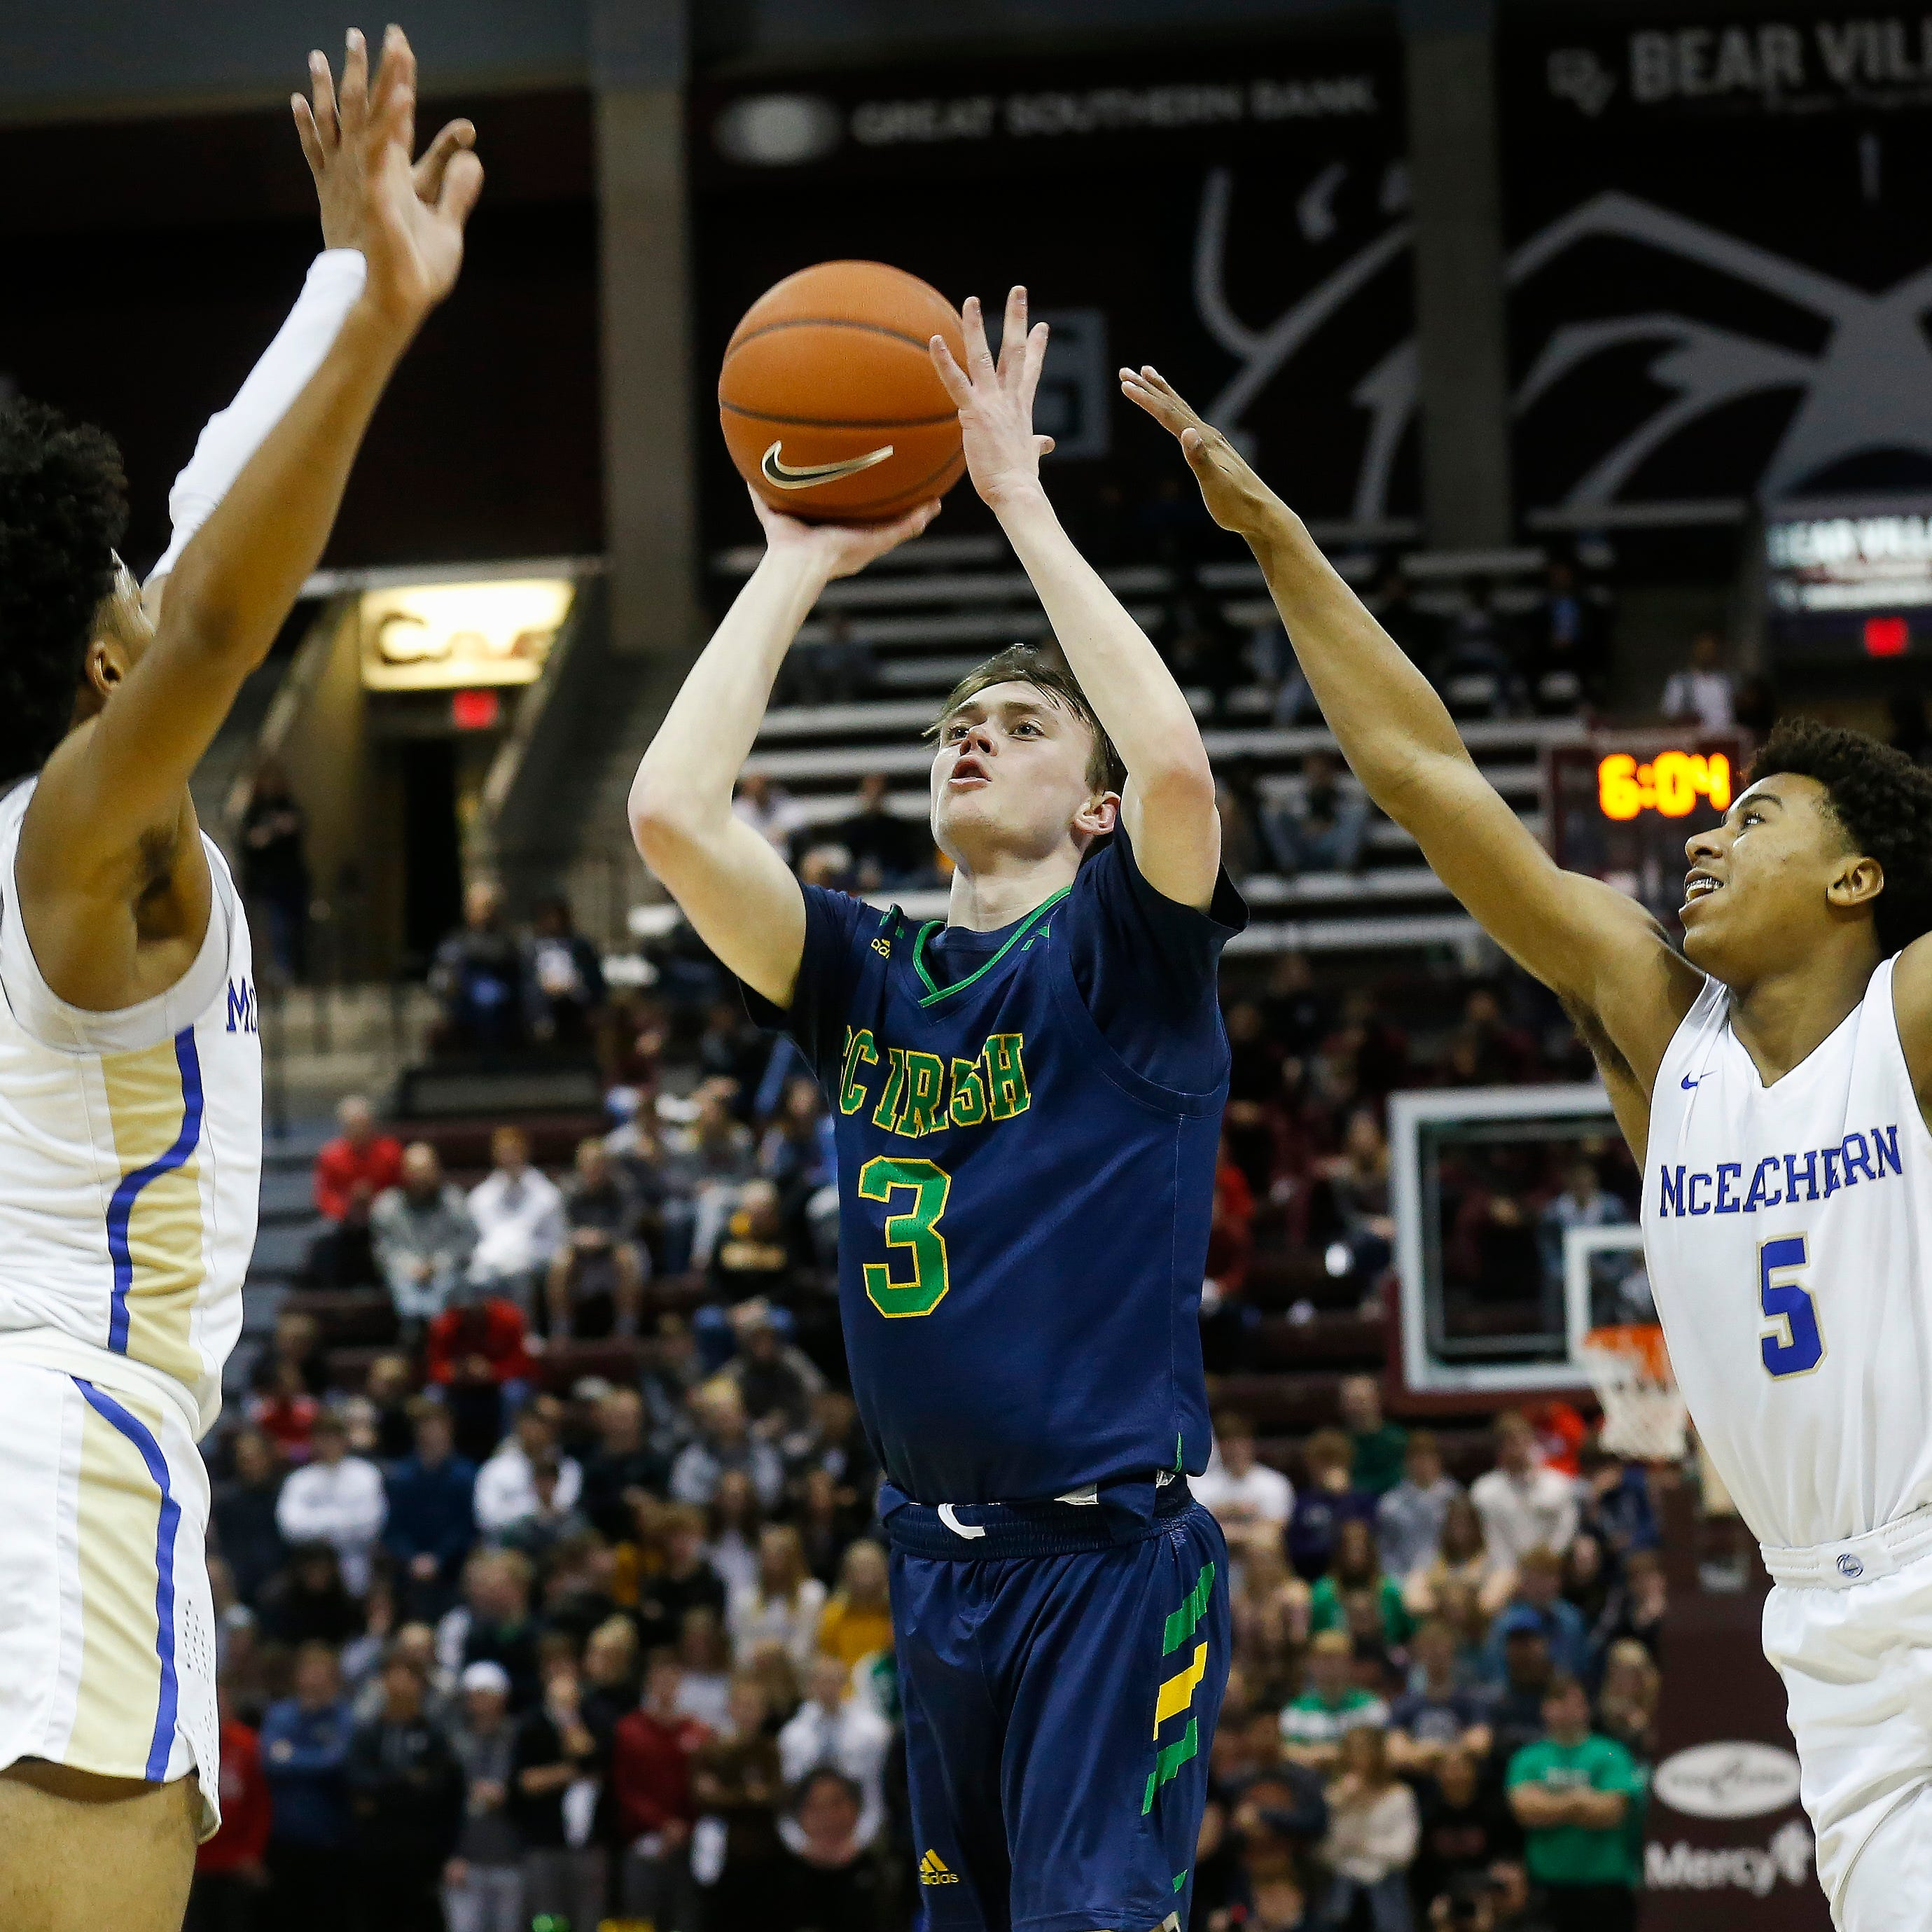 High school hoops roundup: Catholic, Greenwood advance to next round